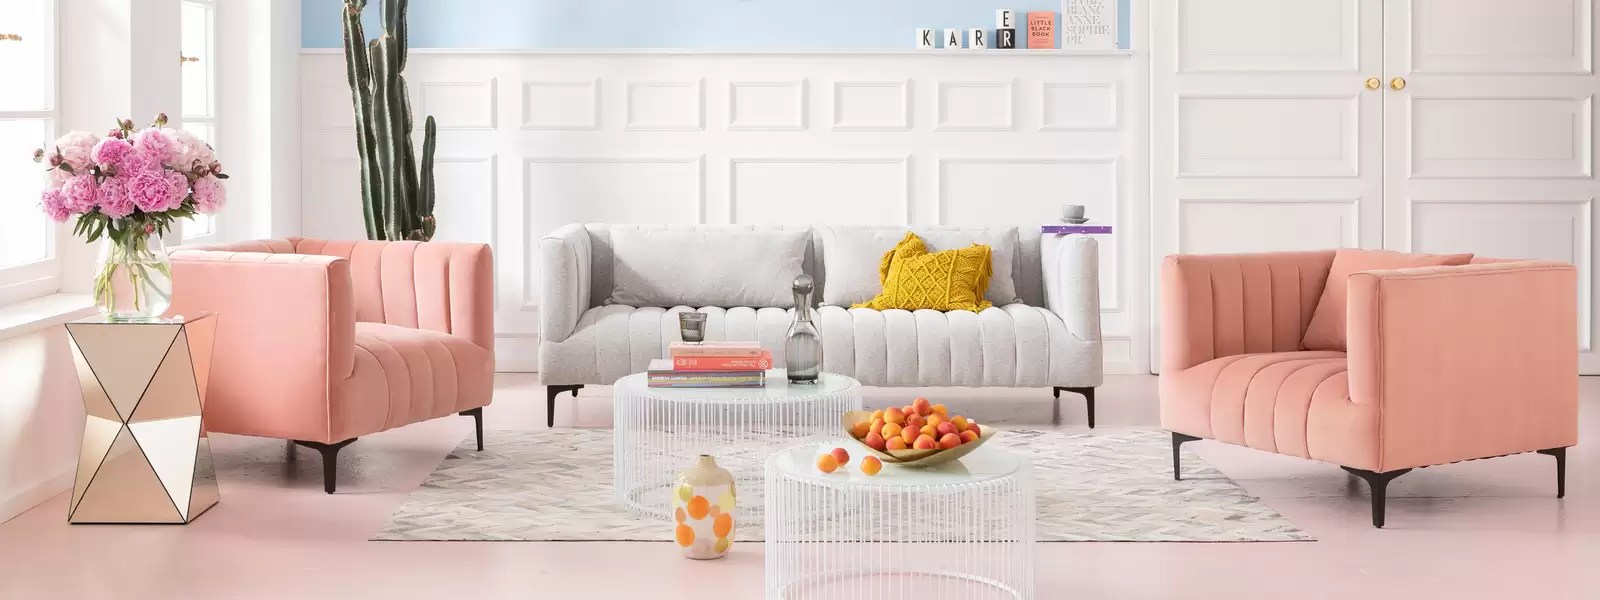 Kare Design Wayfair De